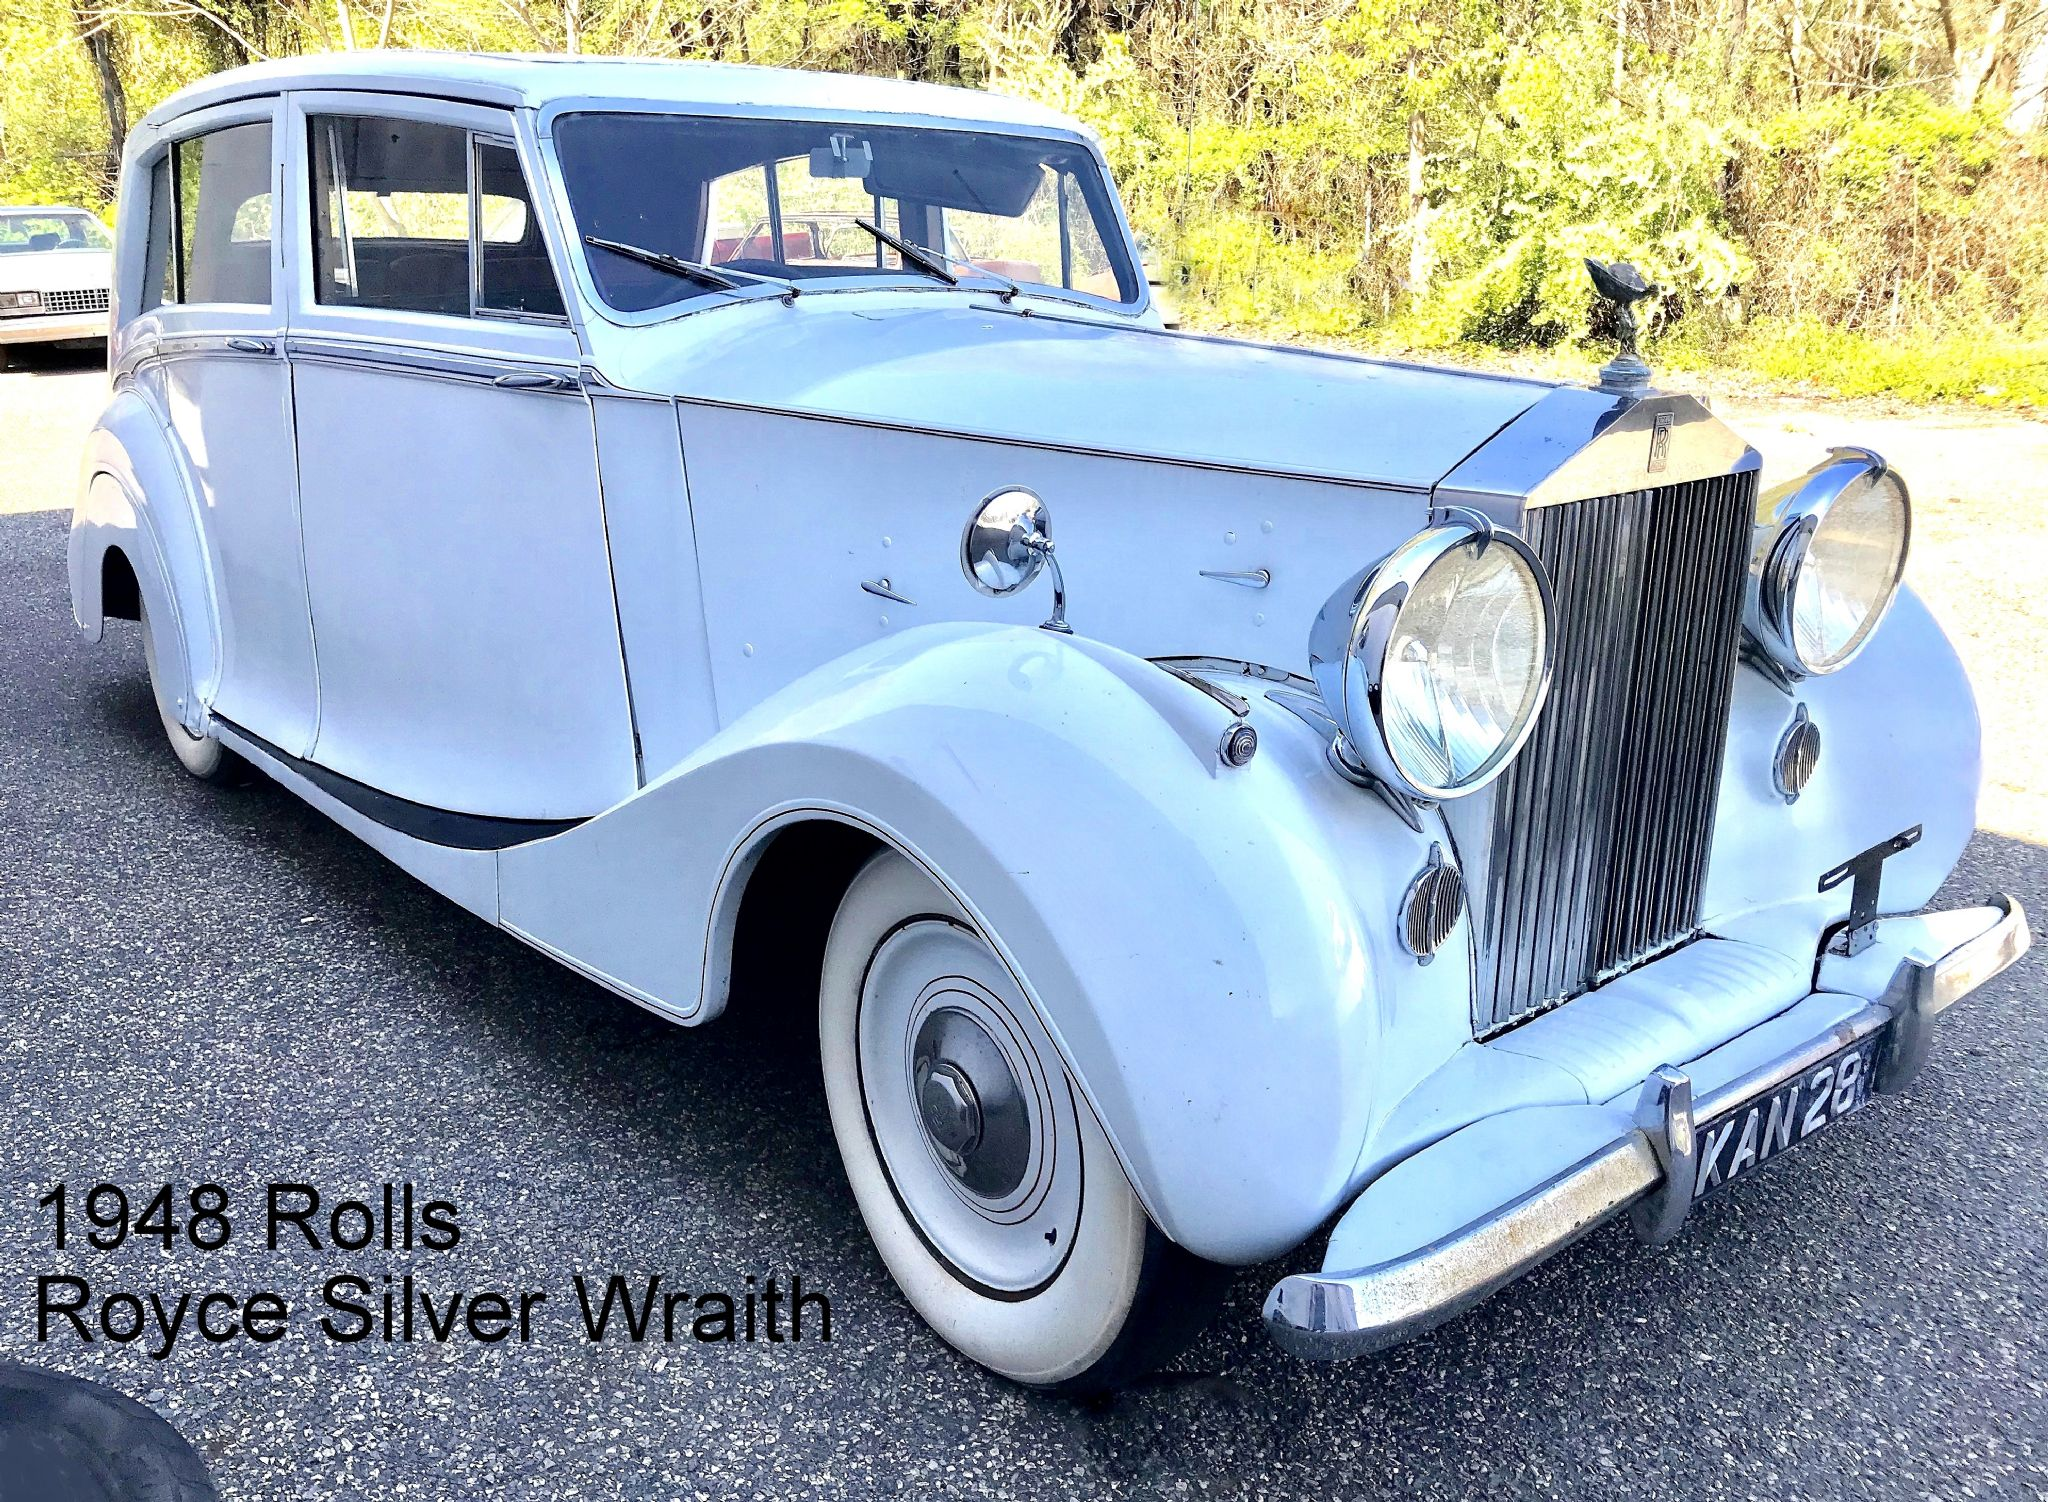 1948 ROLLS-ROYCE SILVER WRATH 7